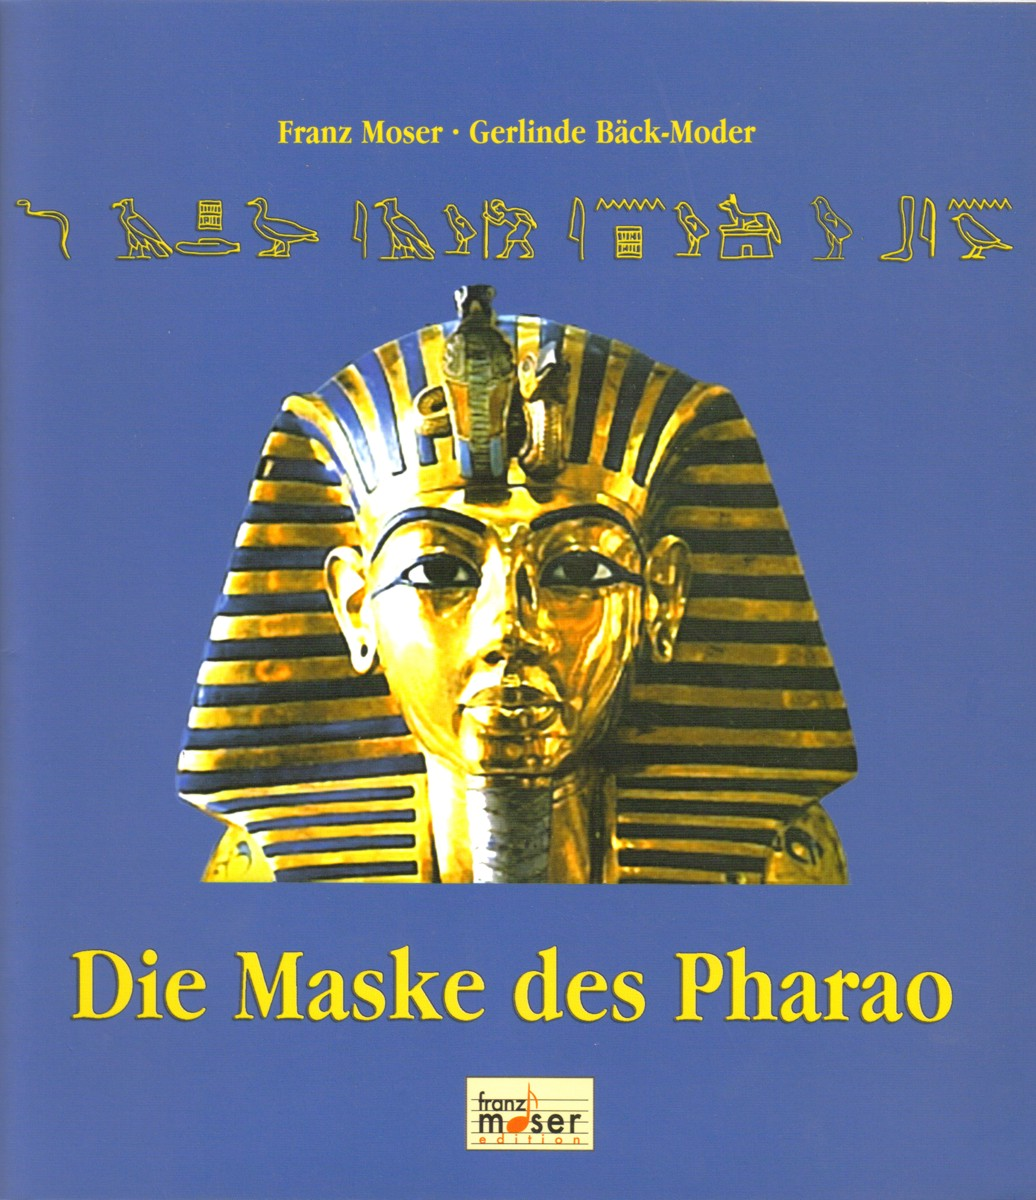 Maske des Pharao, Die - click for larger image